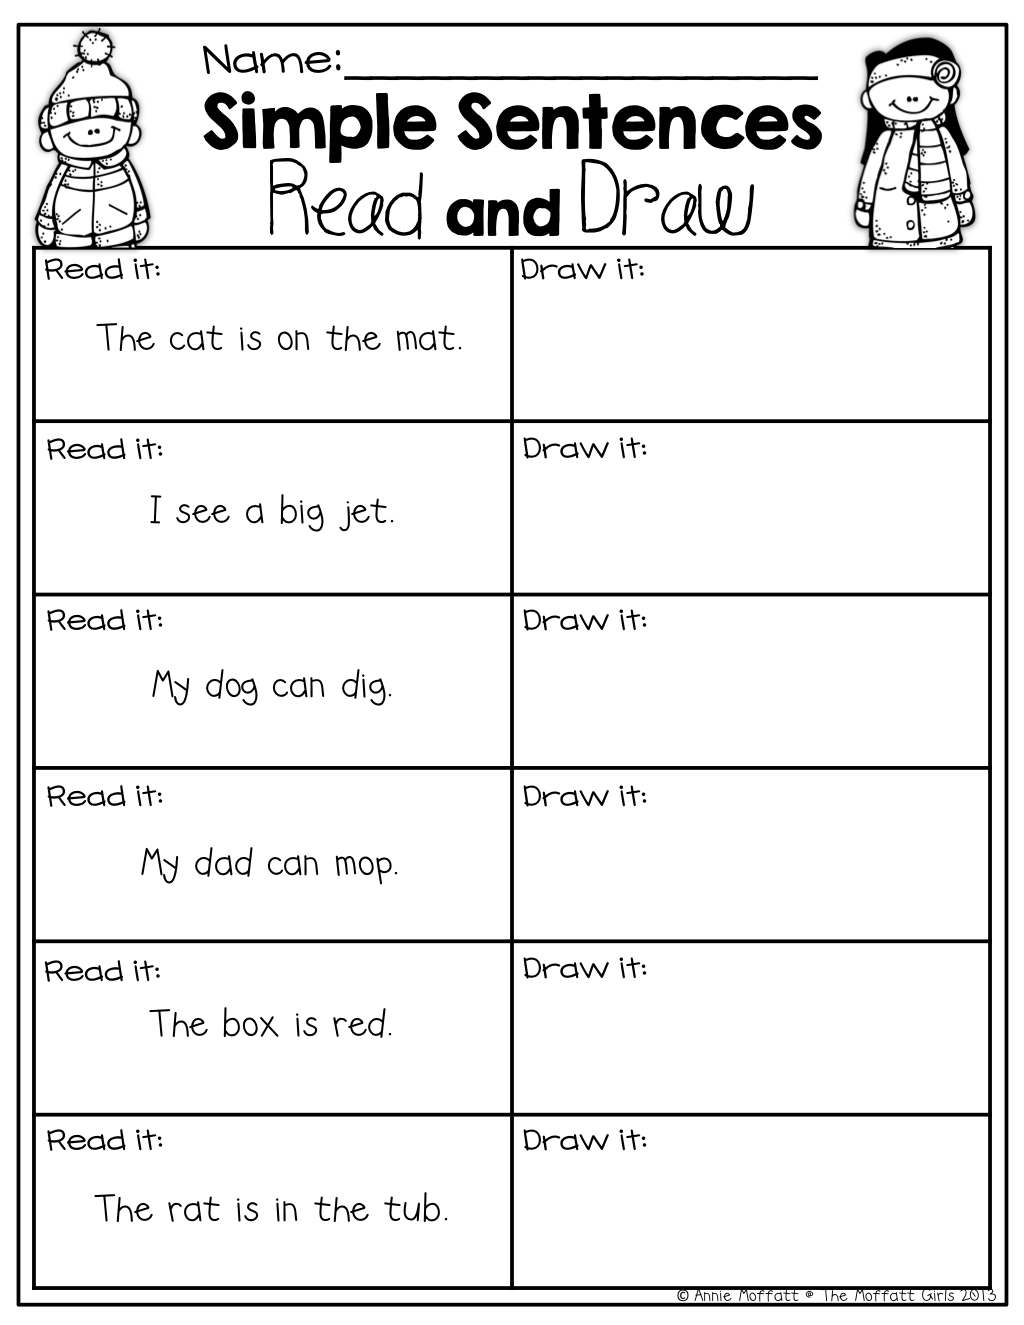 Simple Sentences With Sight Words And Cvc Words (read And Draw